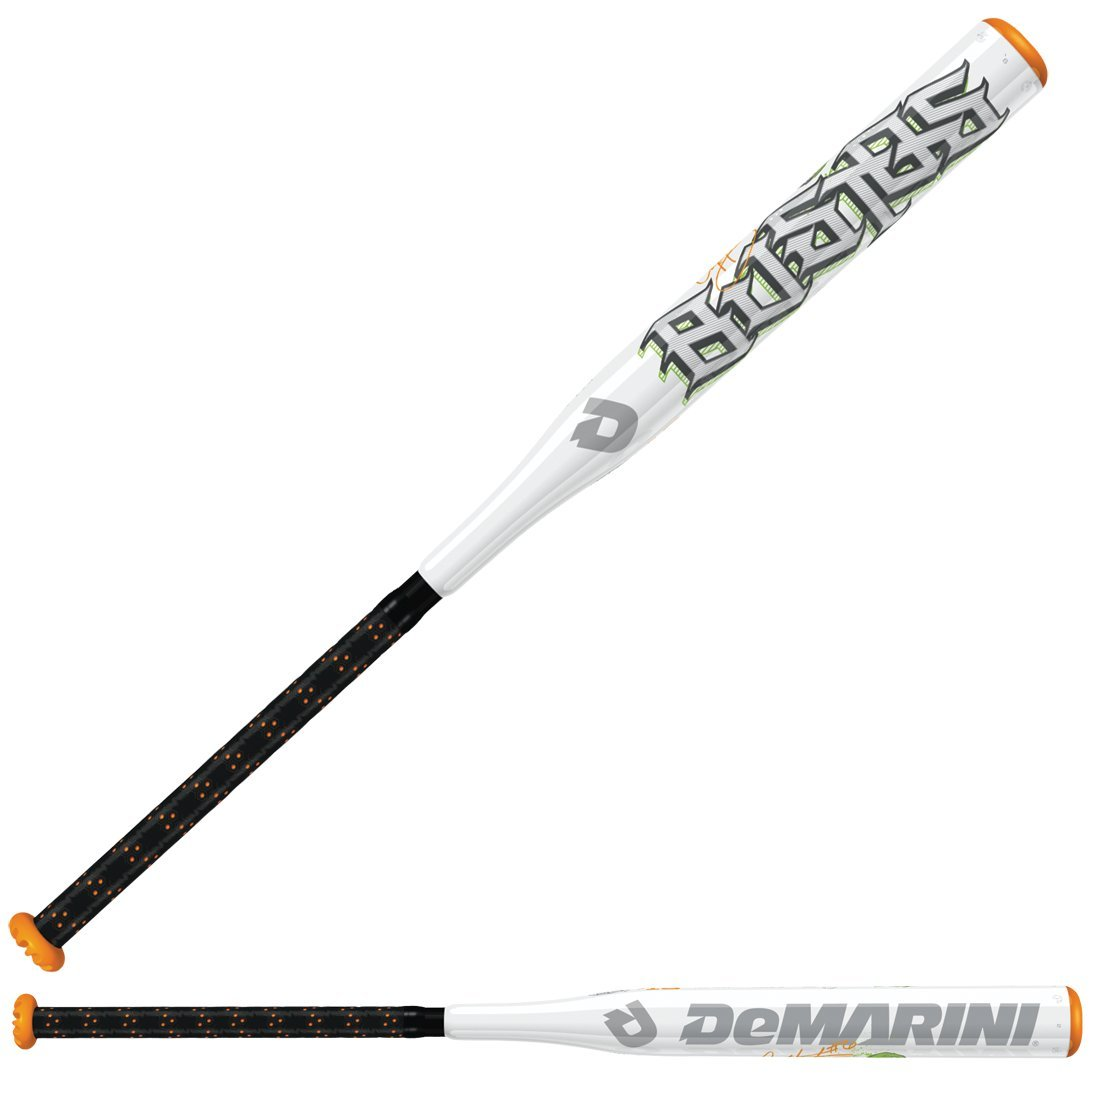 DeMarini Bustos Fast-pitch Softball Bat Review